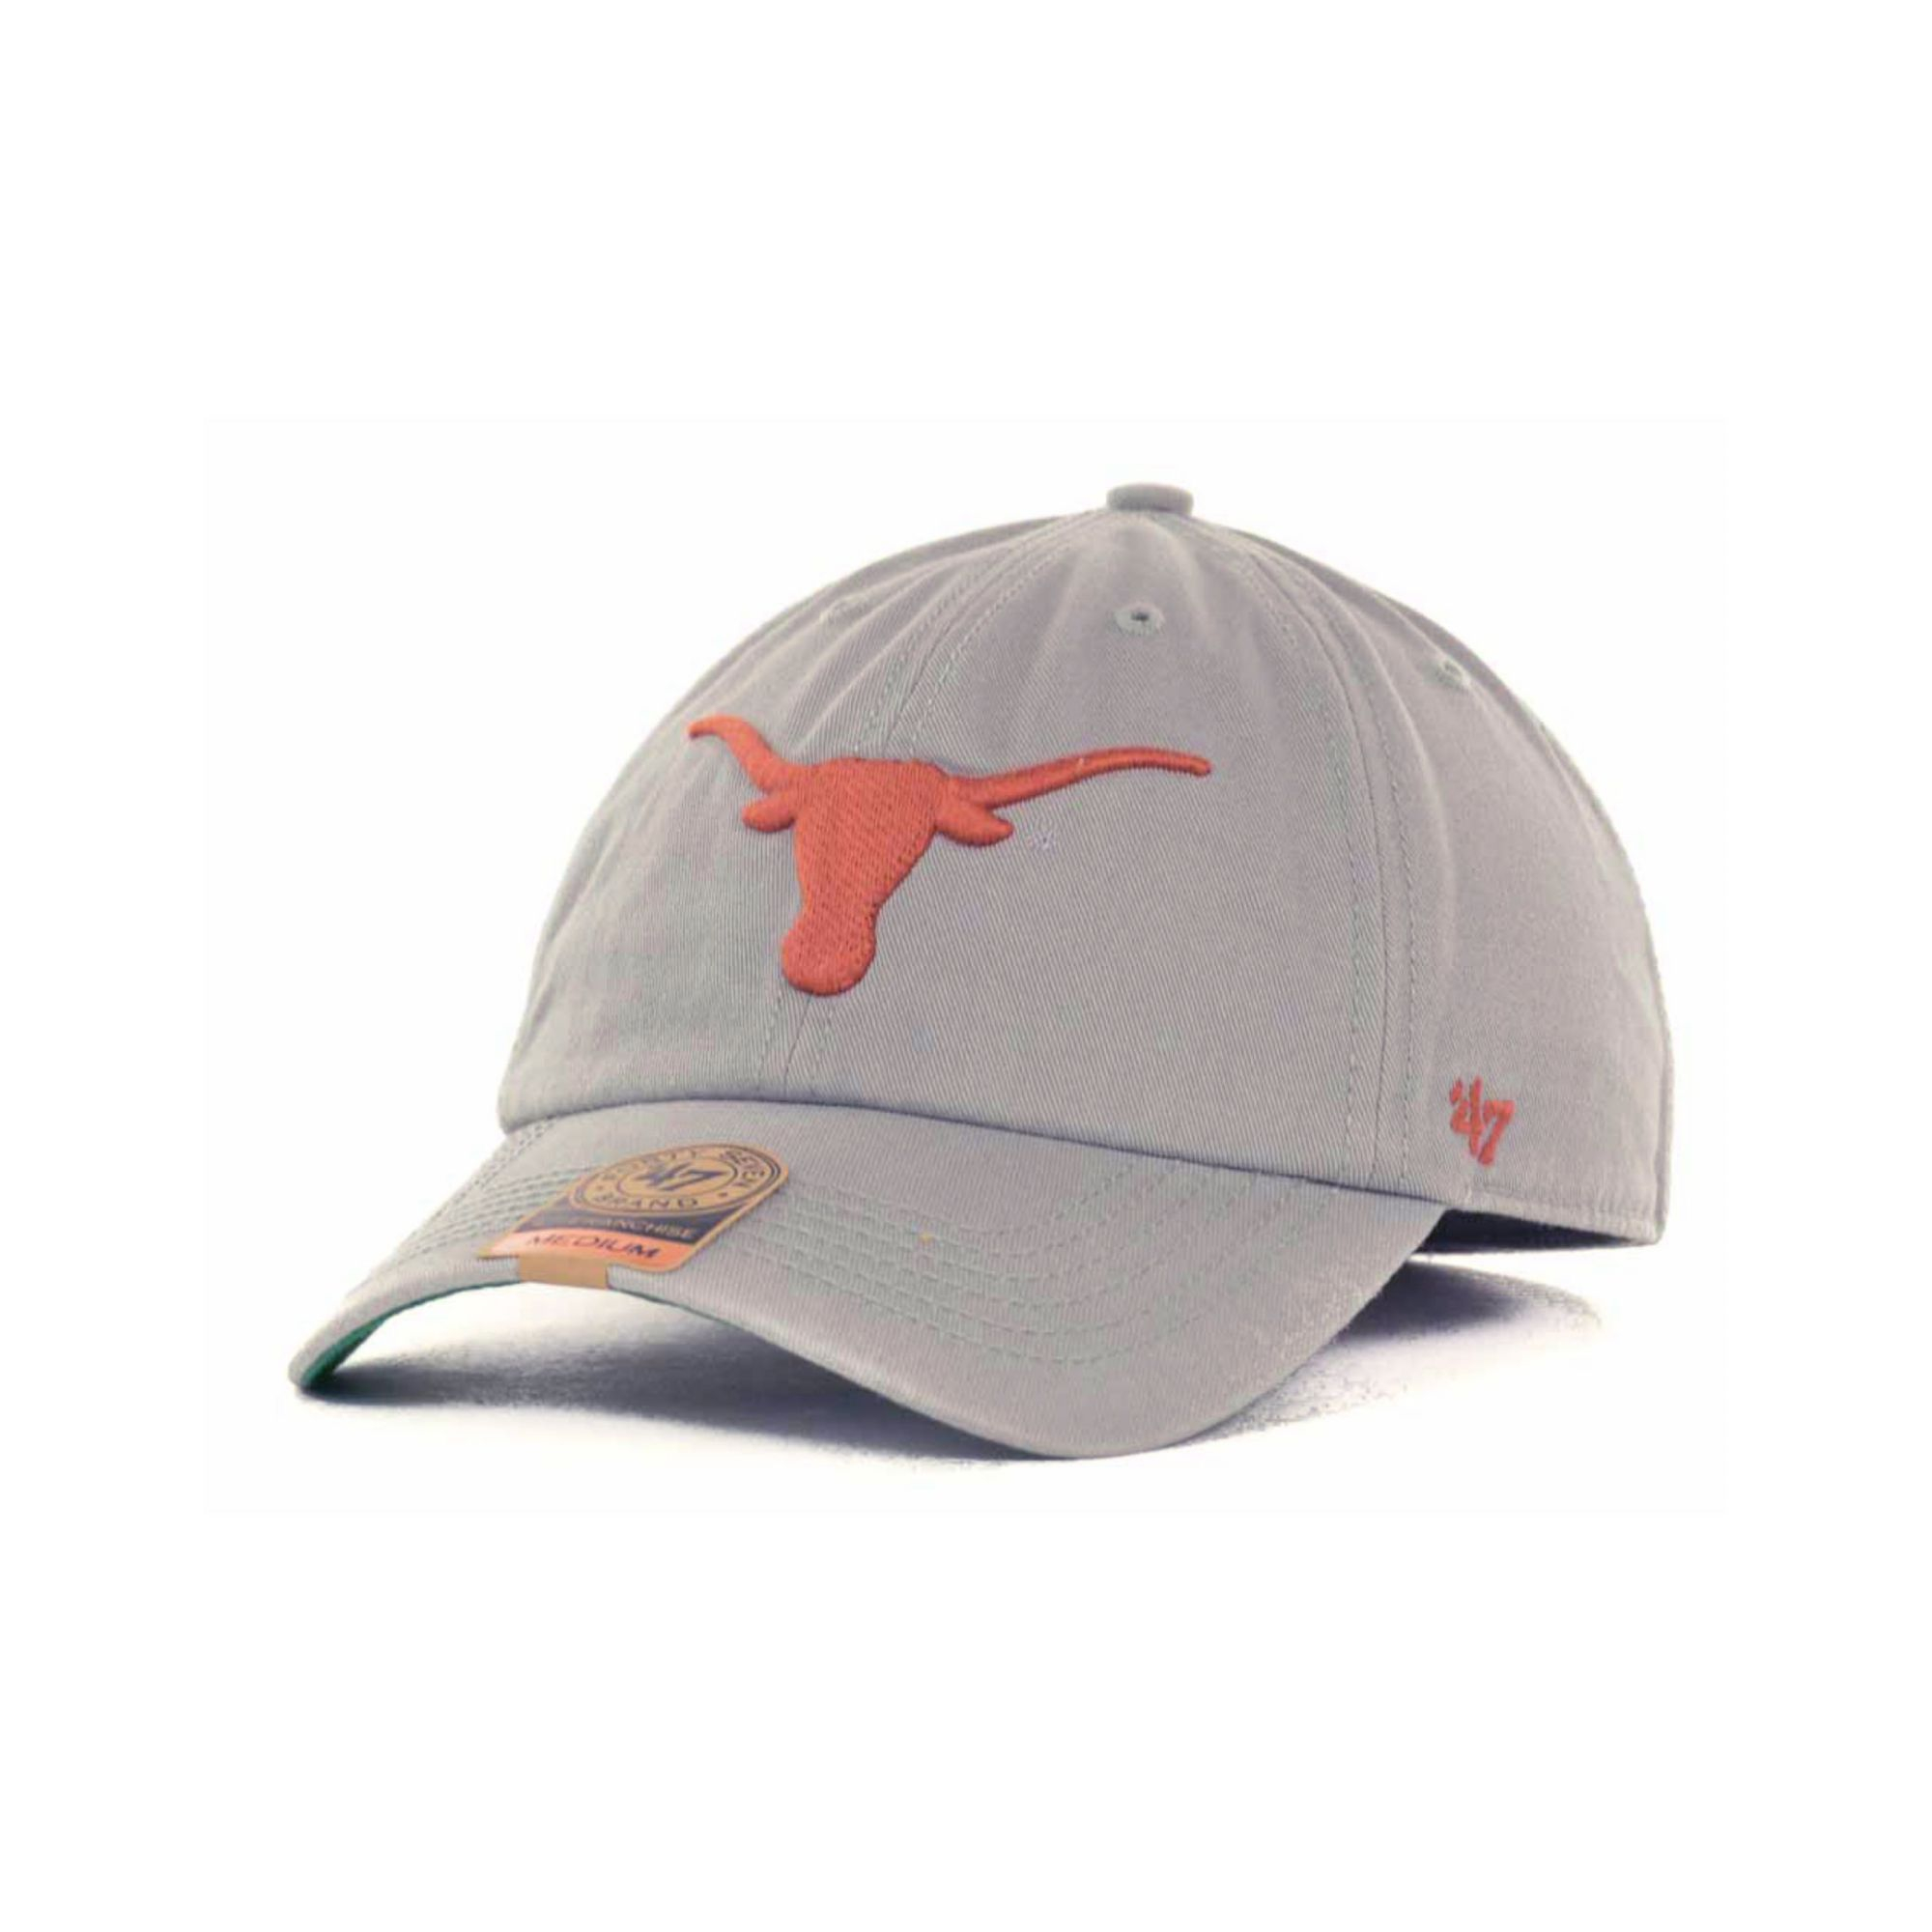 72beebcce7c5e 47 Brand Texas Longhorns Ncaa 47 Grey Franchise Cap in Gray for Men - Lyst